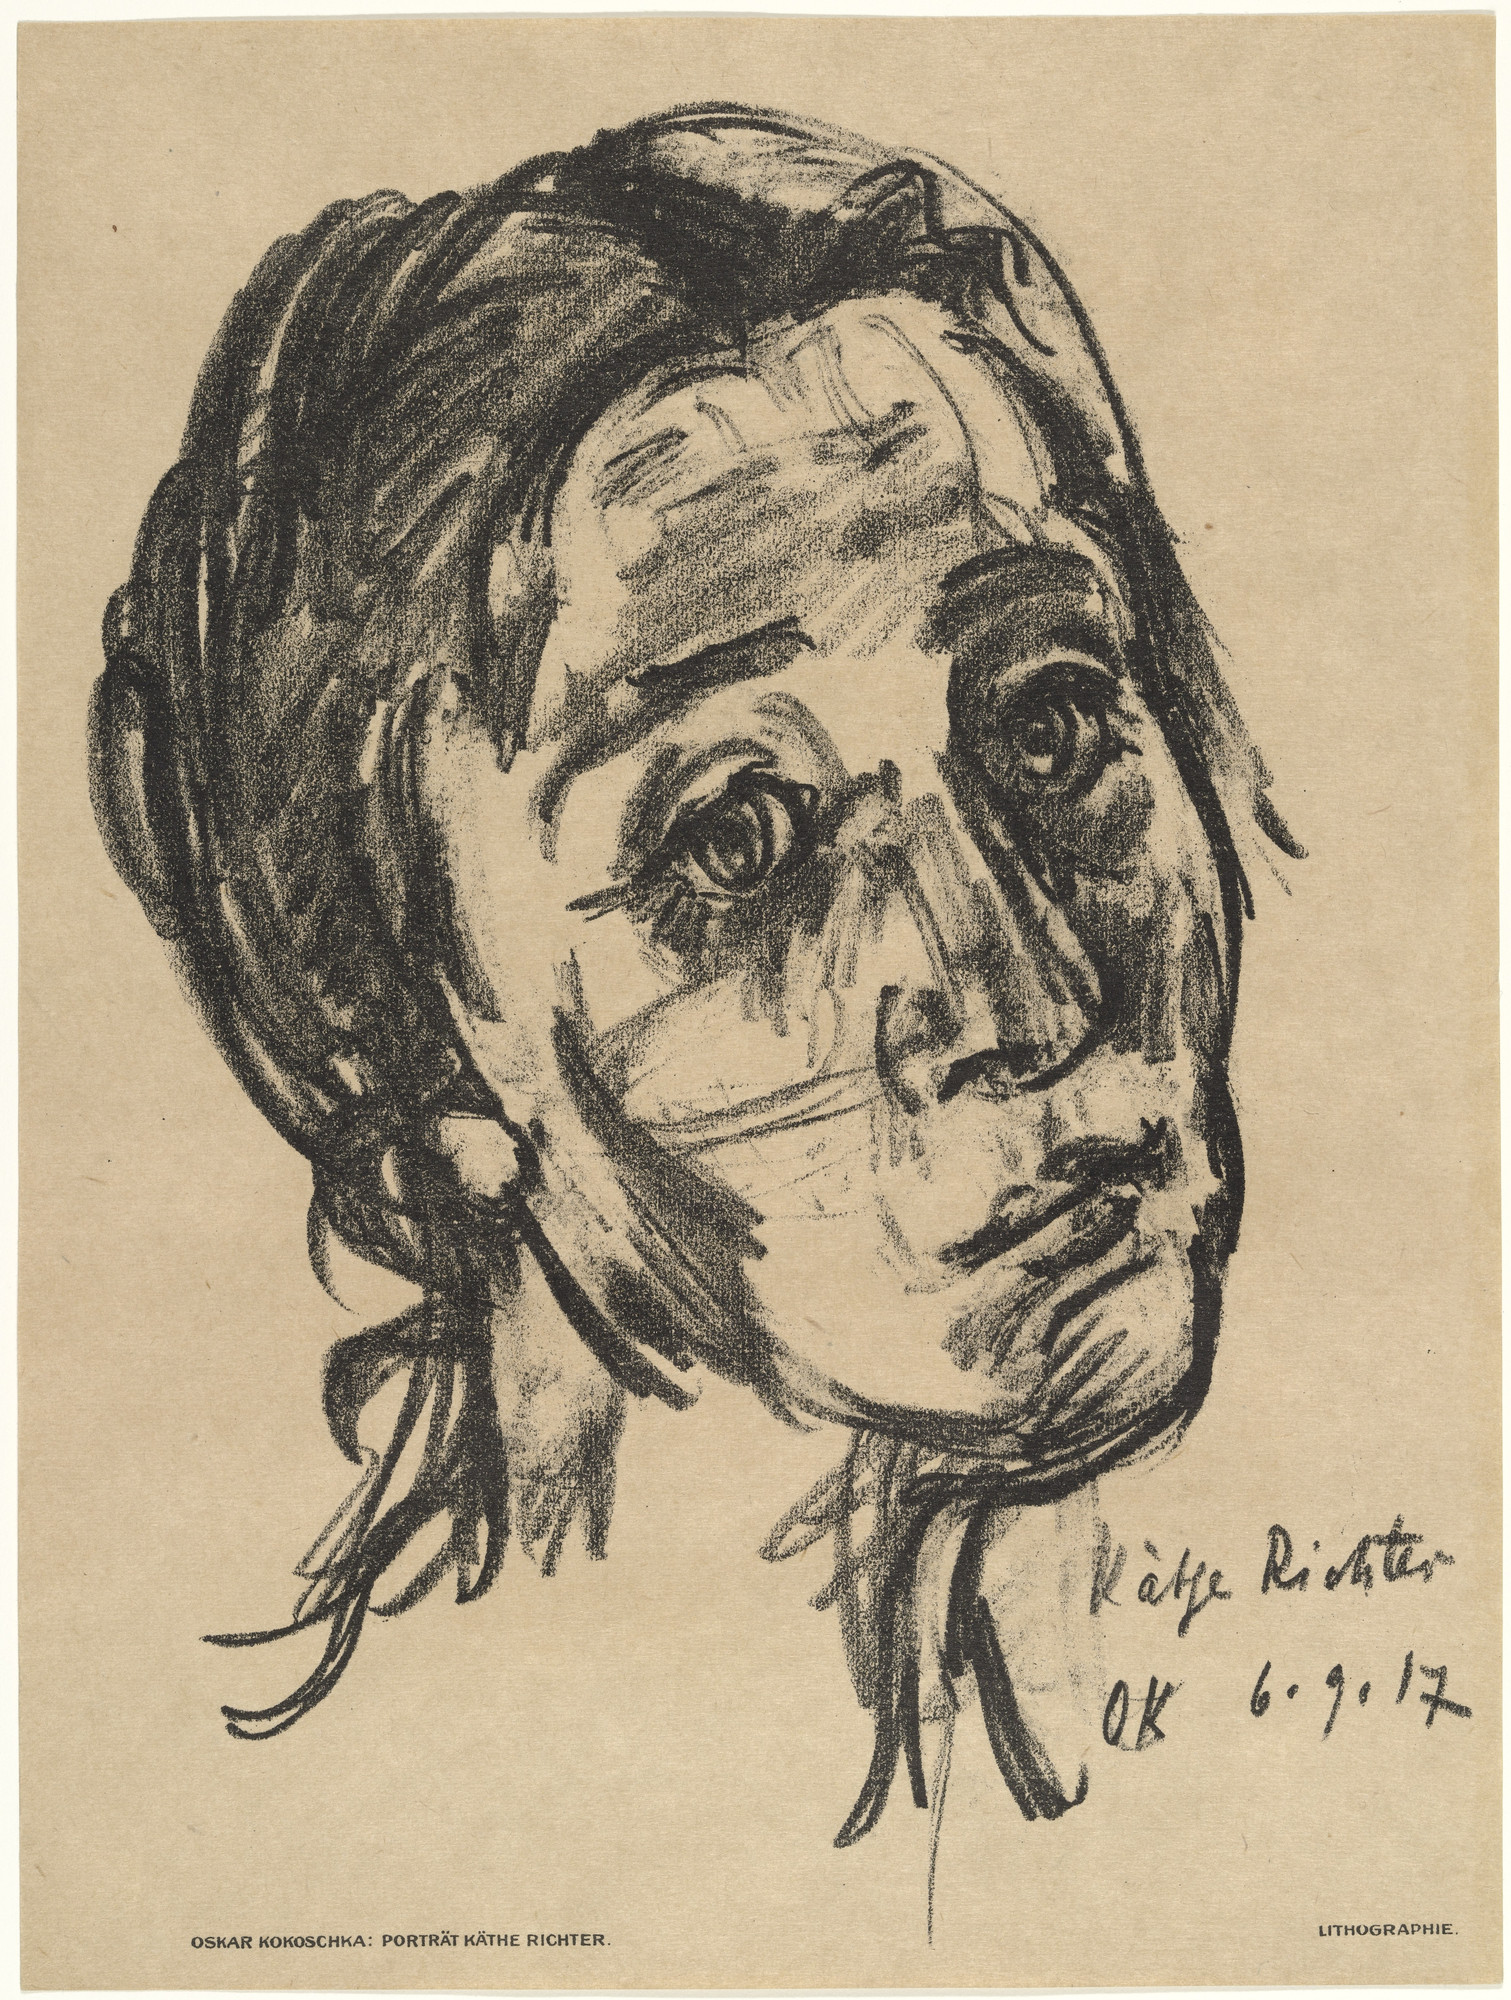 Oskar Kokoschka. Käthe Richter (Head, Slightly Tilted Back) [Käthe Richter (Kopf, leicht zurückgeneigt)] (plate, preceding p. 289) from the periodical Das Kunstblatt, vol. 1, no. 10 (Oct 1917). 1917